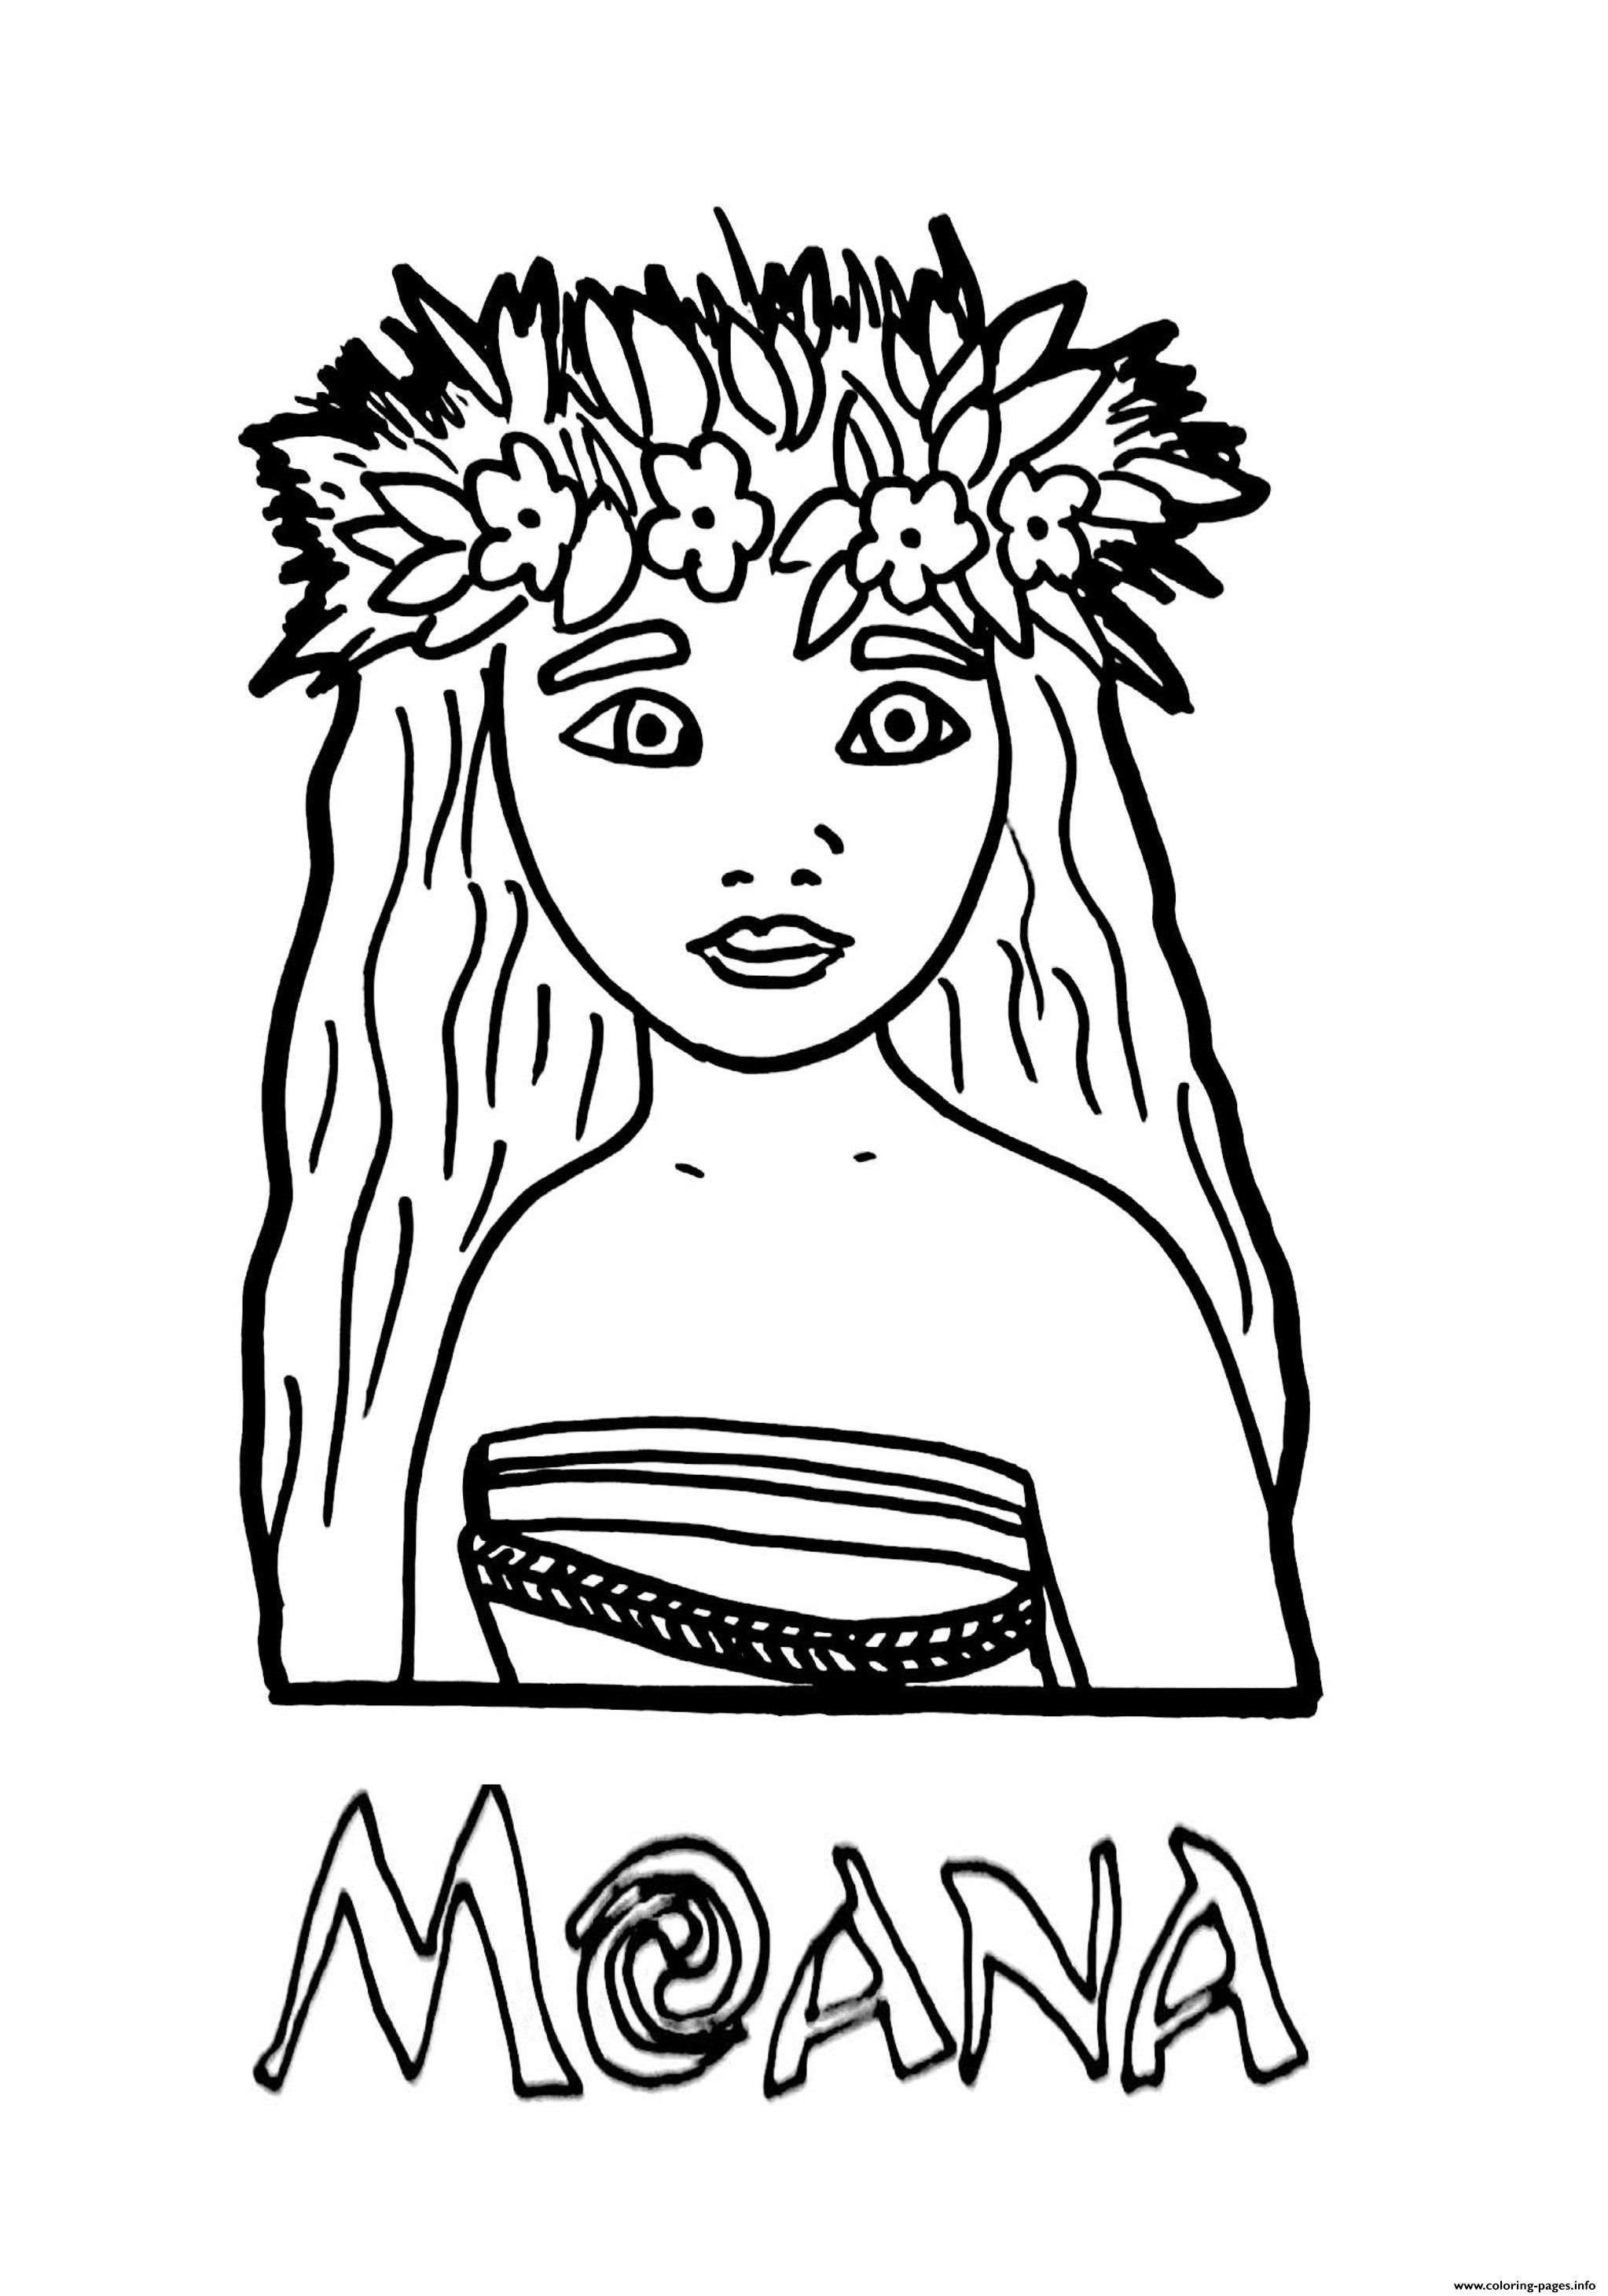 Coloring Pagesfo Moana Princess Printable Coloring